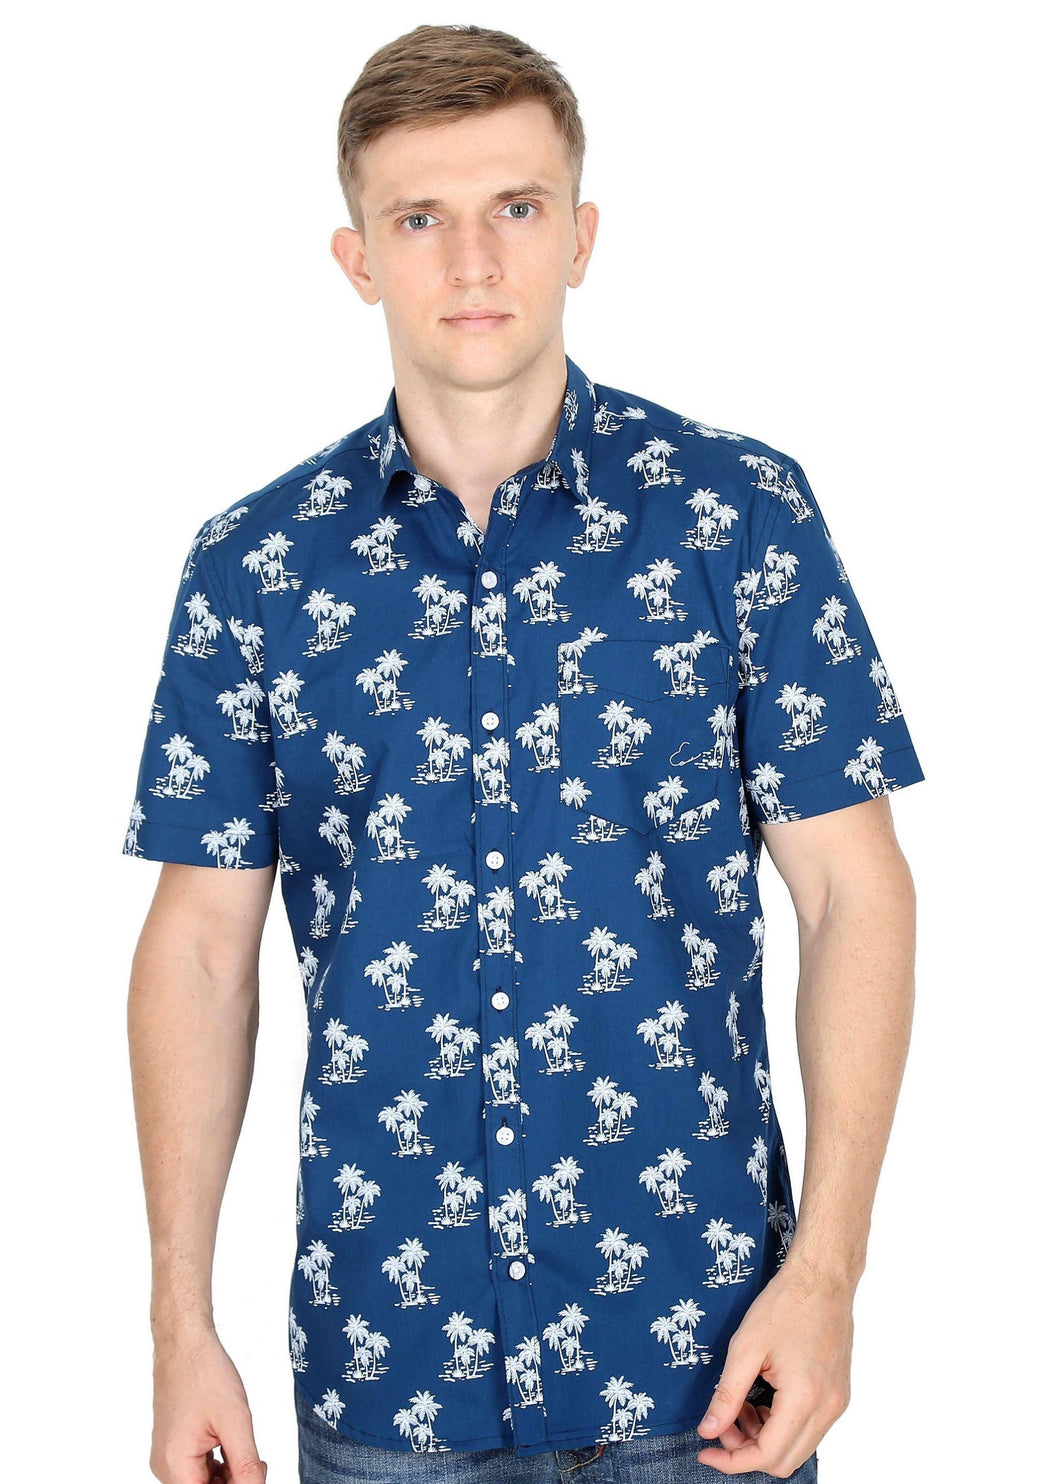 Tusok-andamanVacation-Printed Shirtimage-Andaman (1)